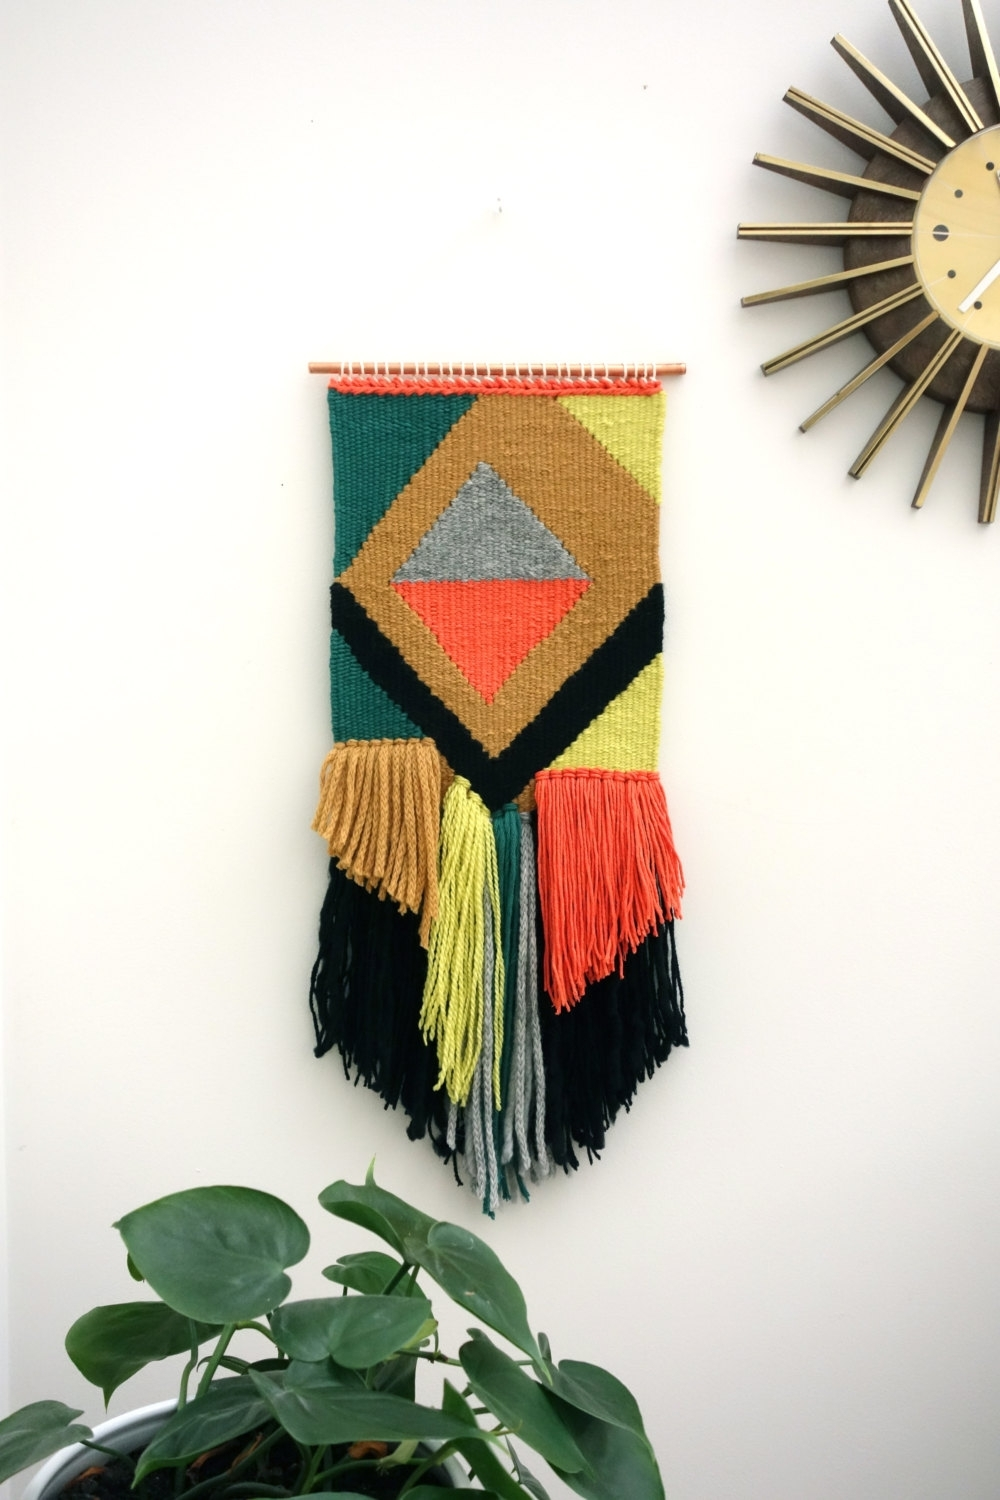 "Woven Wall Hangings / Hand Woven Tapestry / Weaving ""diwali Night Regarding Most Popular Mid Century Textile Wall Art (Gallery 3 of 15)"